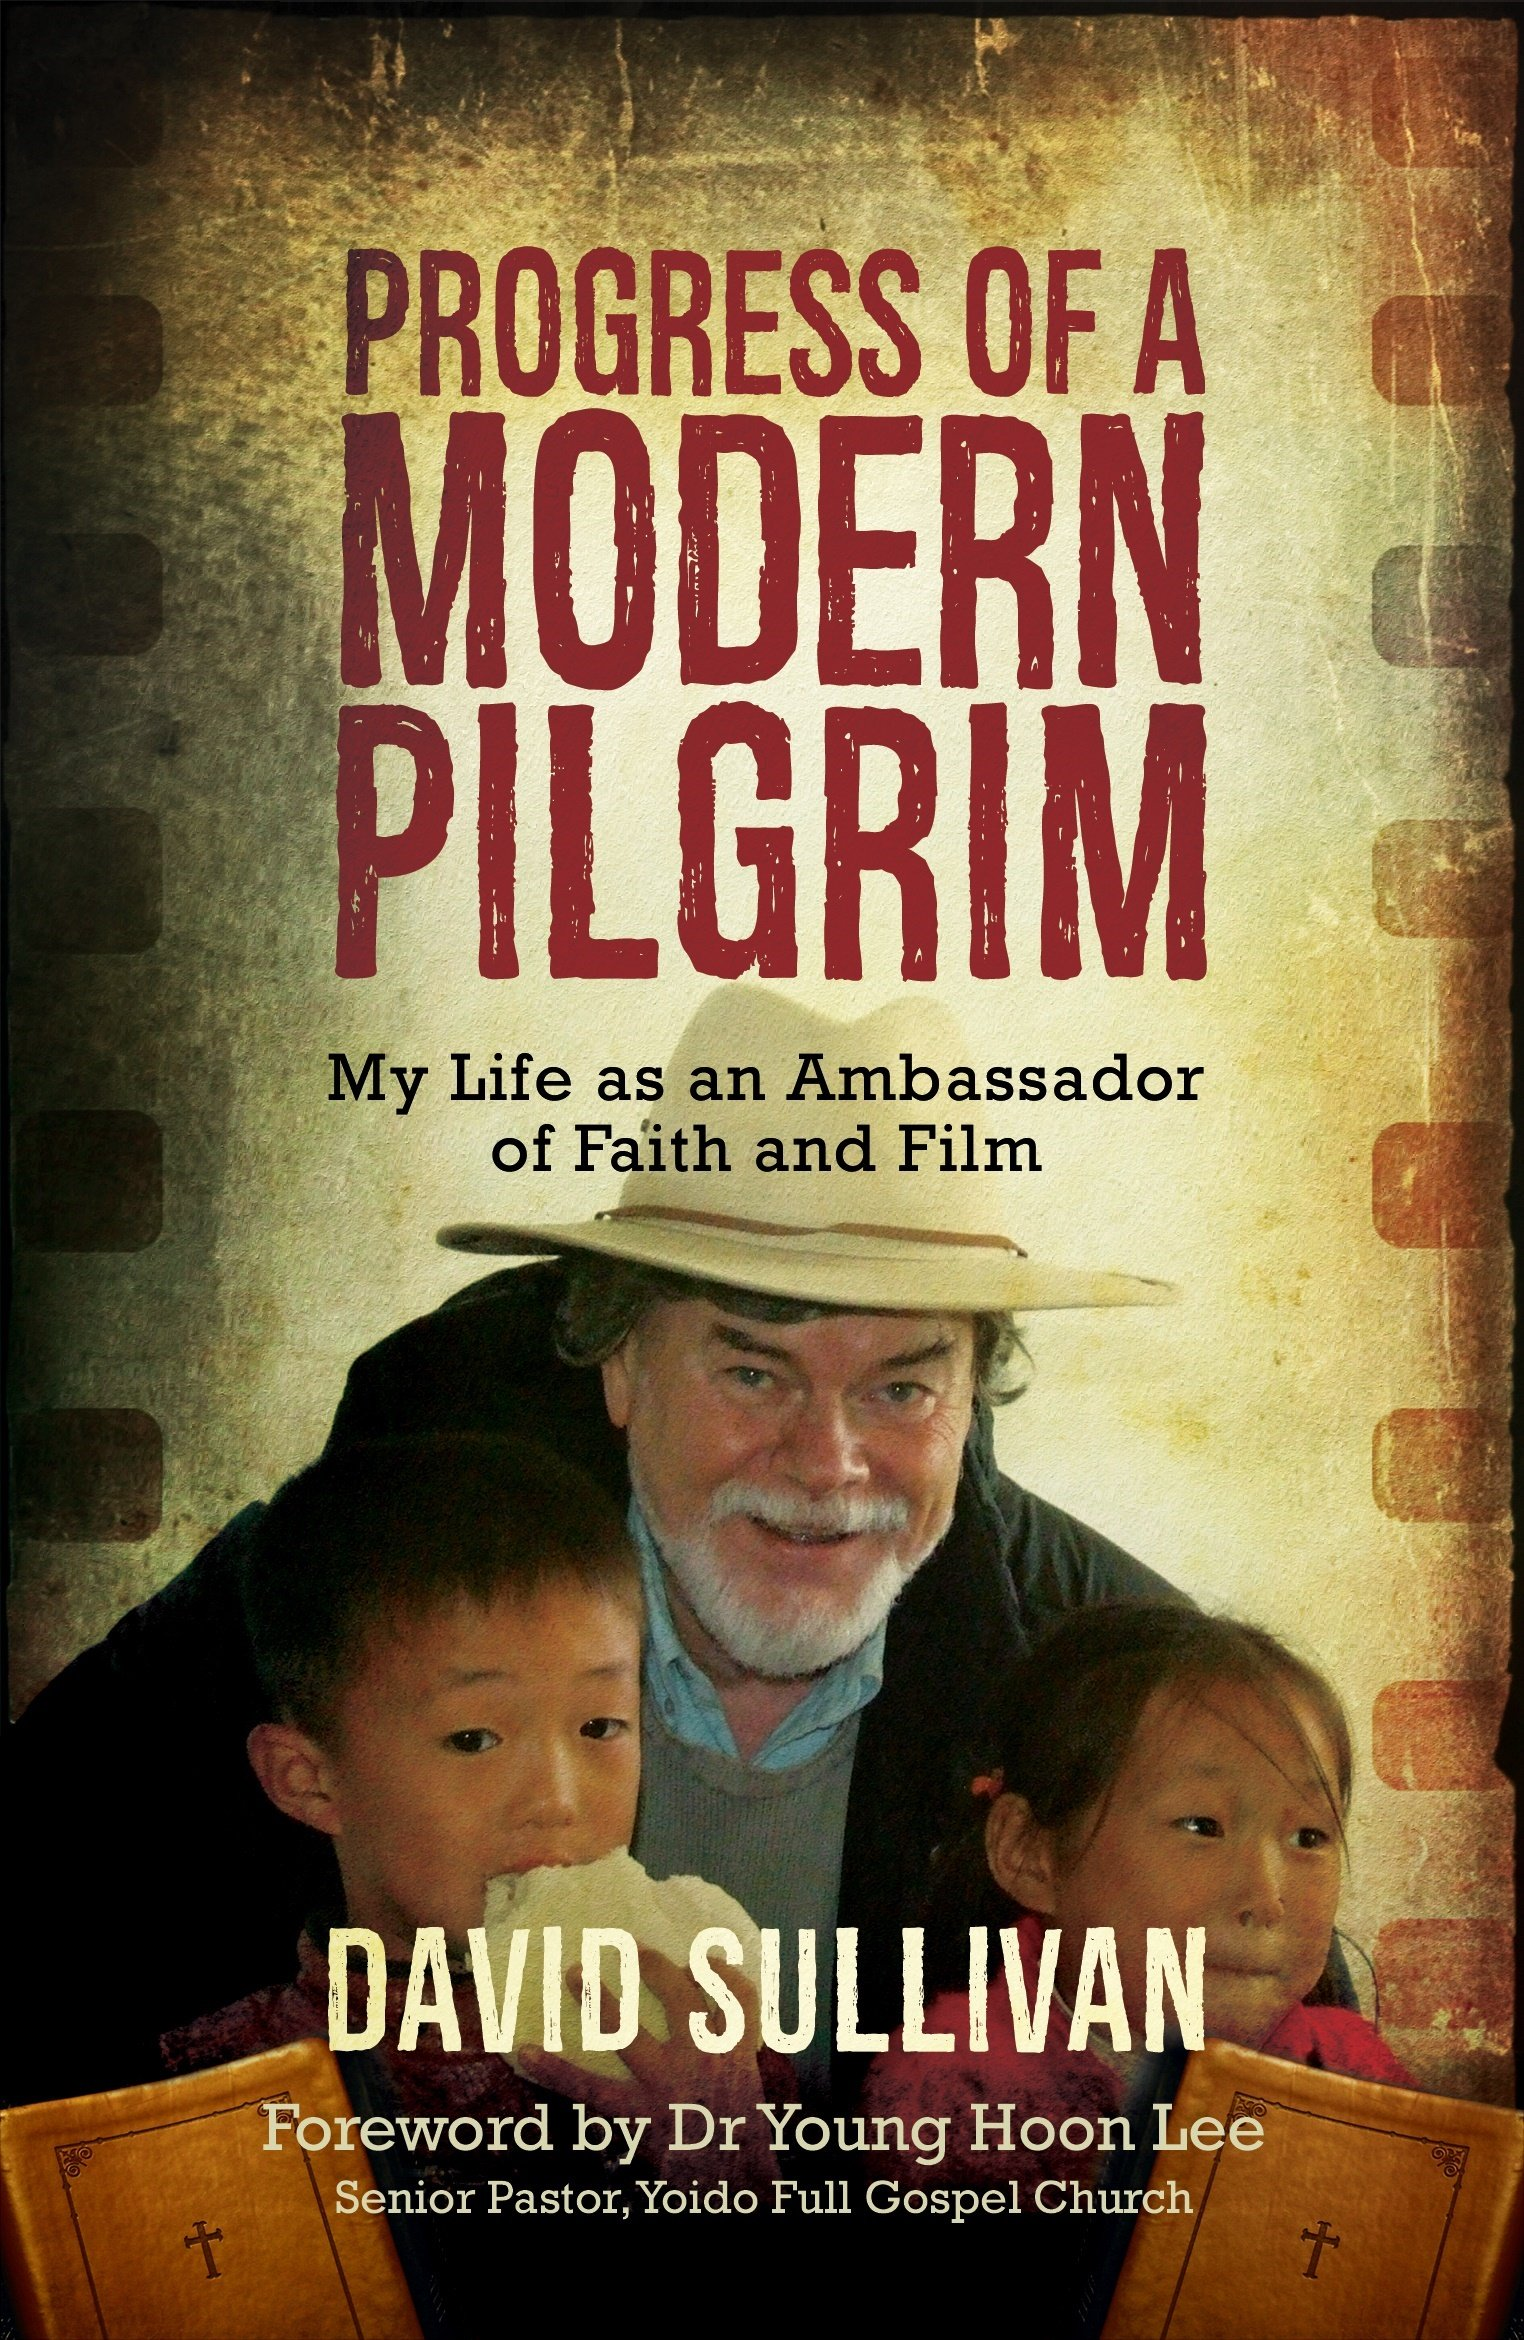 Progress of a Modern Pilgrim: Amazon.es: David Sullivan: Libros en idiomas extranjeros